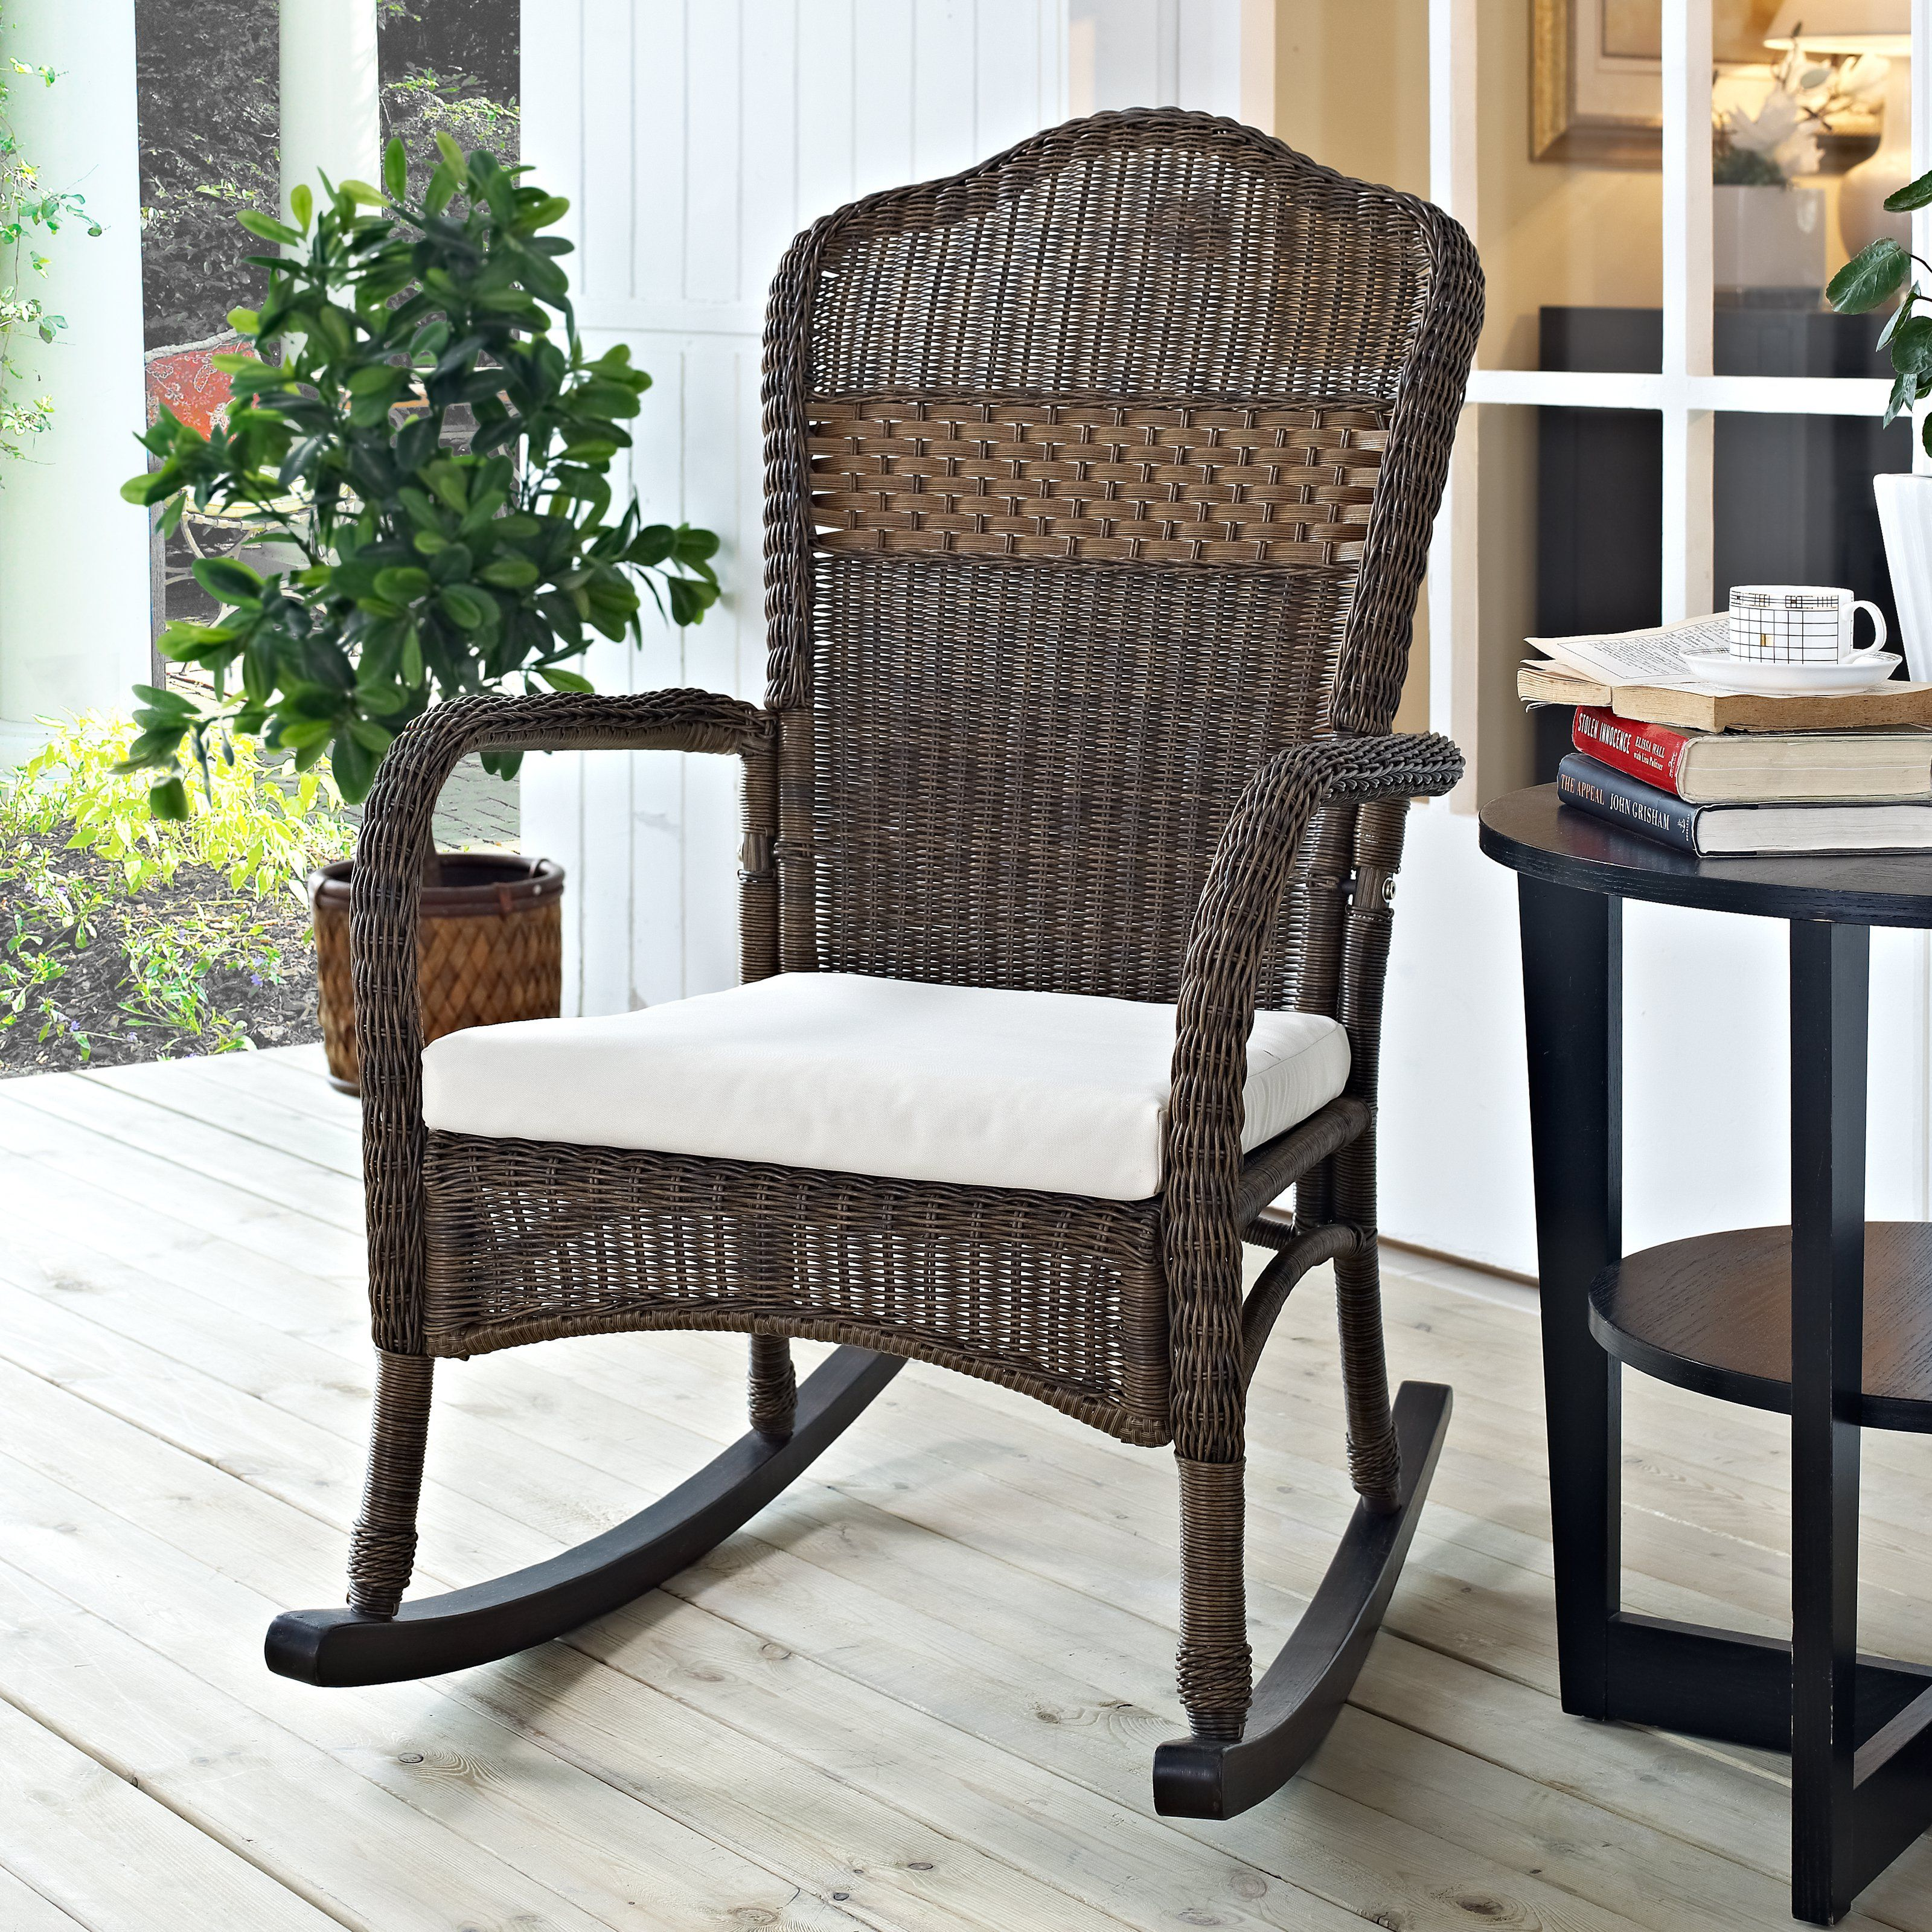 Coral Coast Mocha Resin Wicker Rocking Chair with Beige Cushion - $209.98  @hayneedle